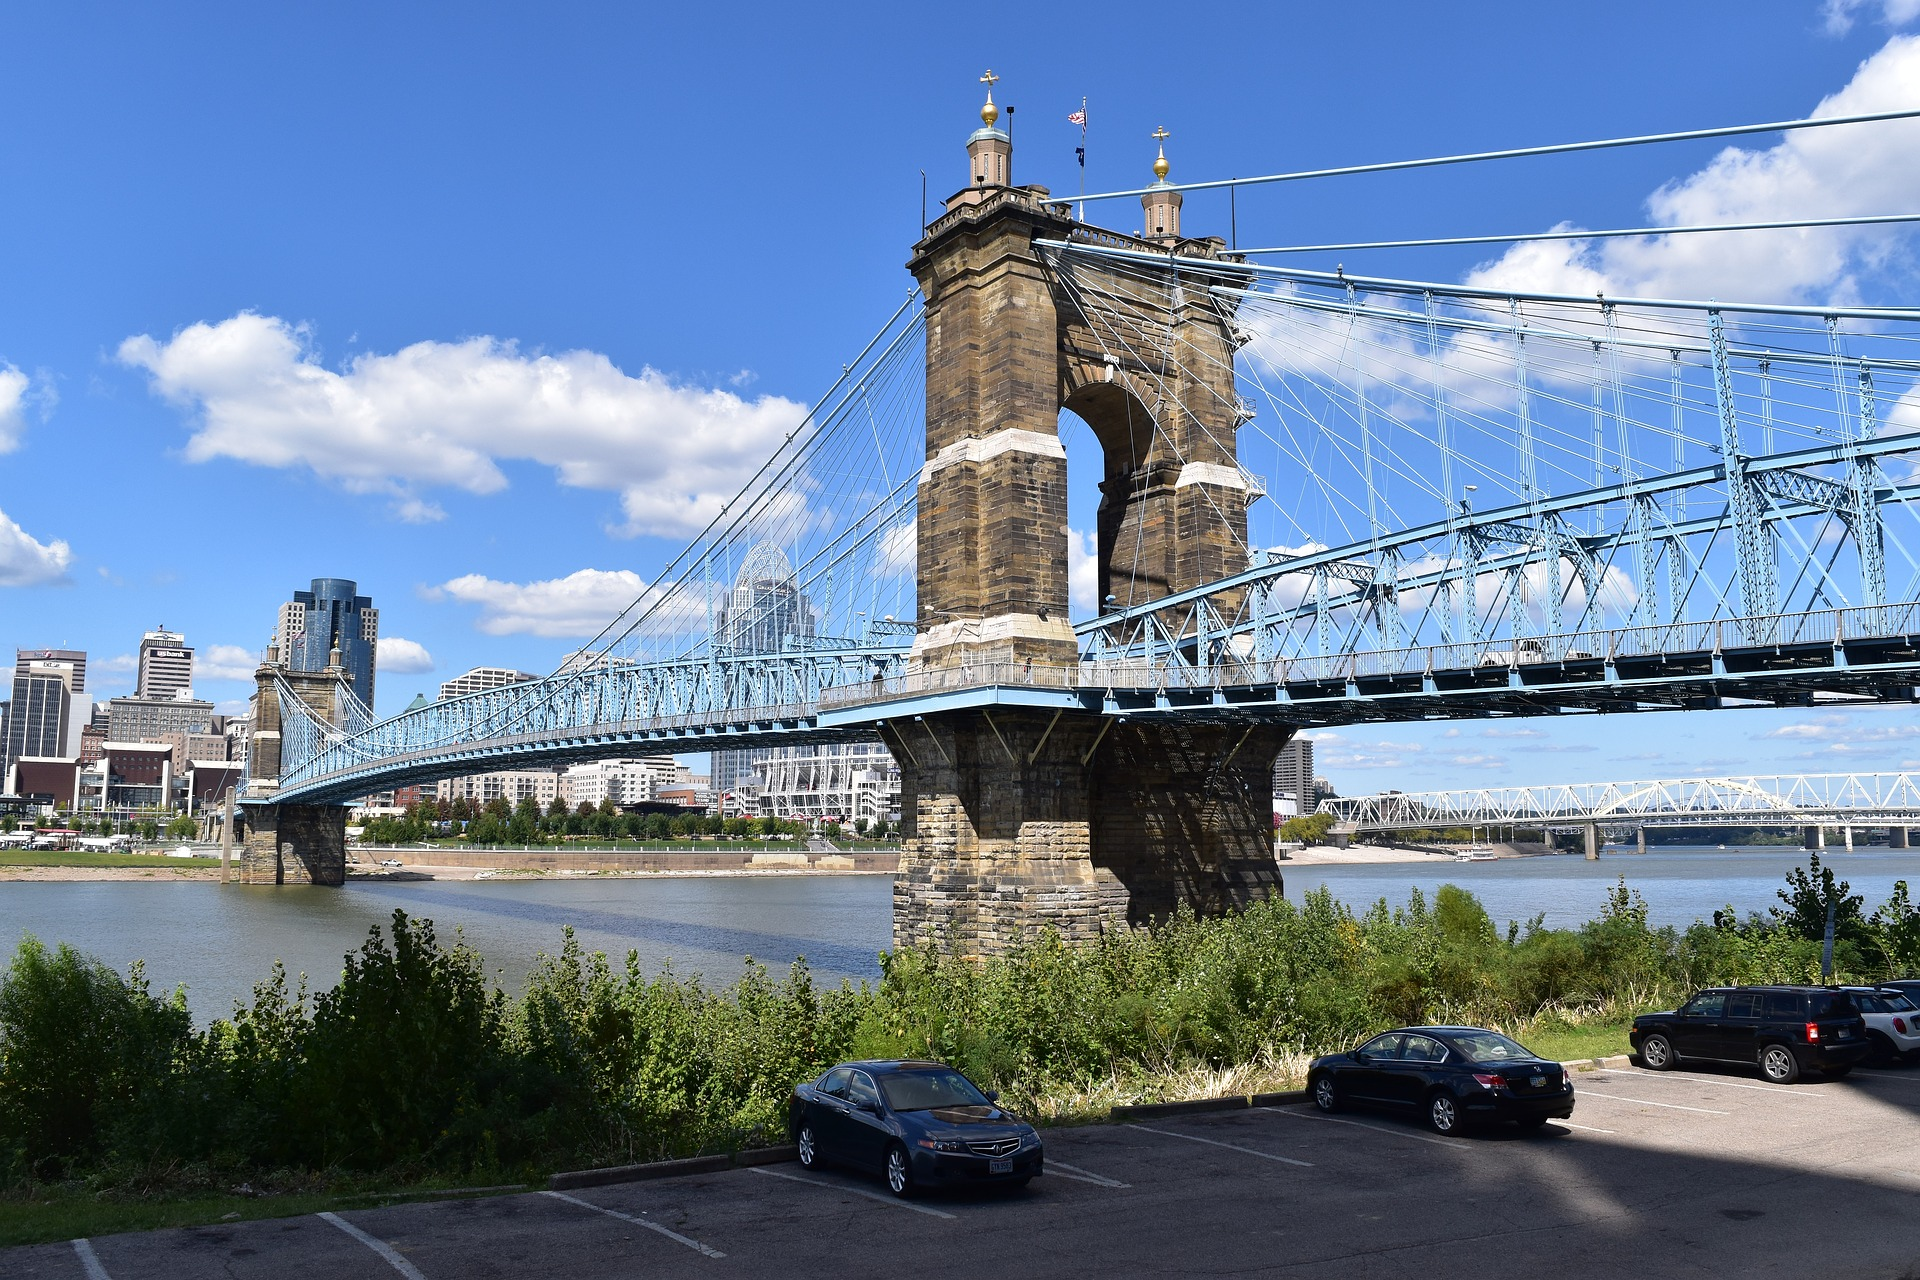 Roebling Suspension Bridge in Newport, Kentucky and historic Kentucky Slot Machine Casino Gambling.